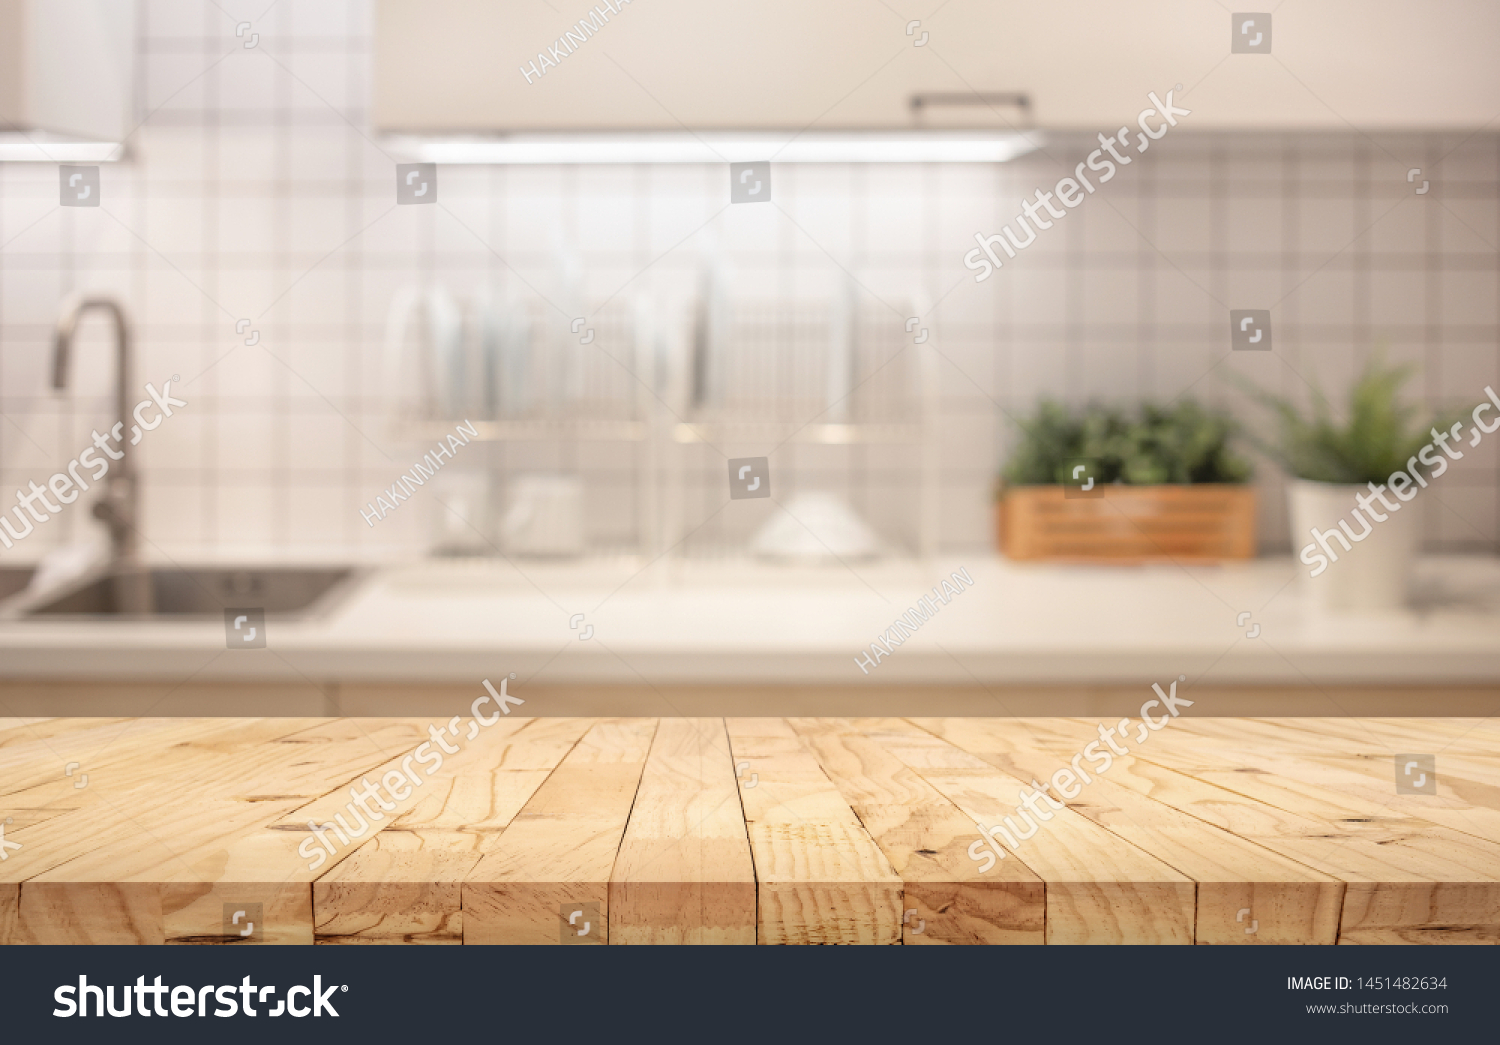 Wood table top on blur kitchen counter (room)background.For montage product display or design key visual layout.